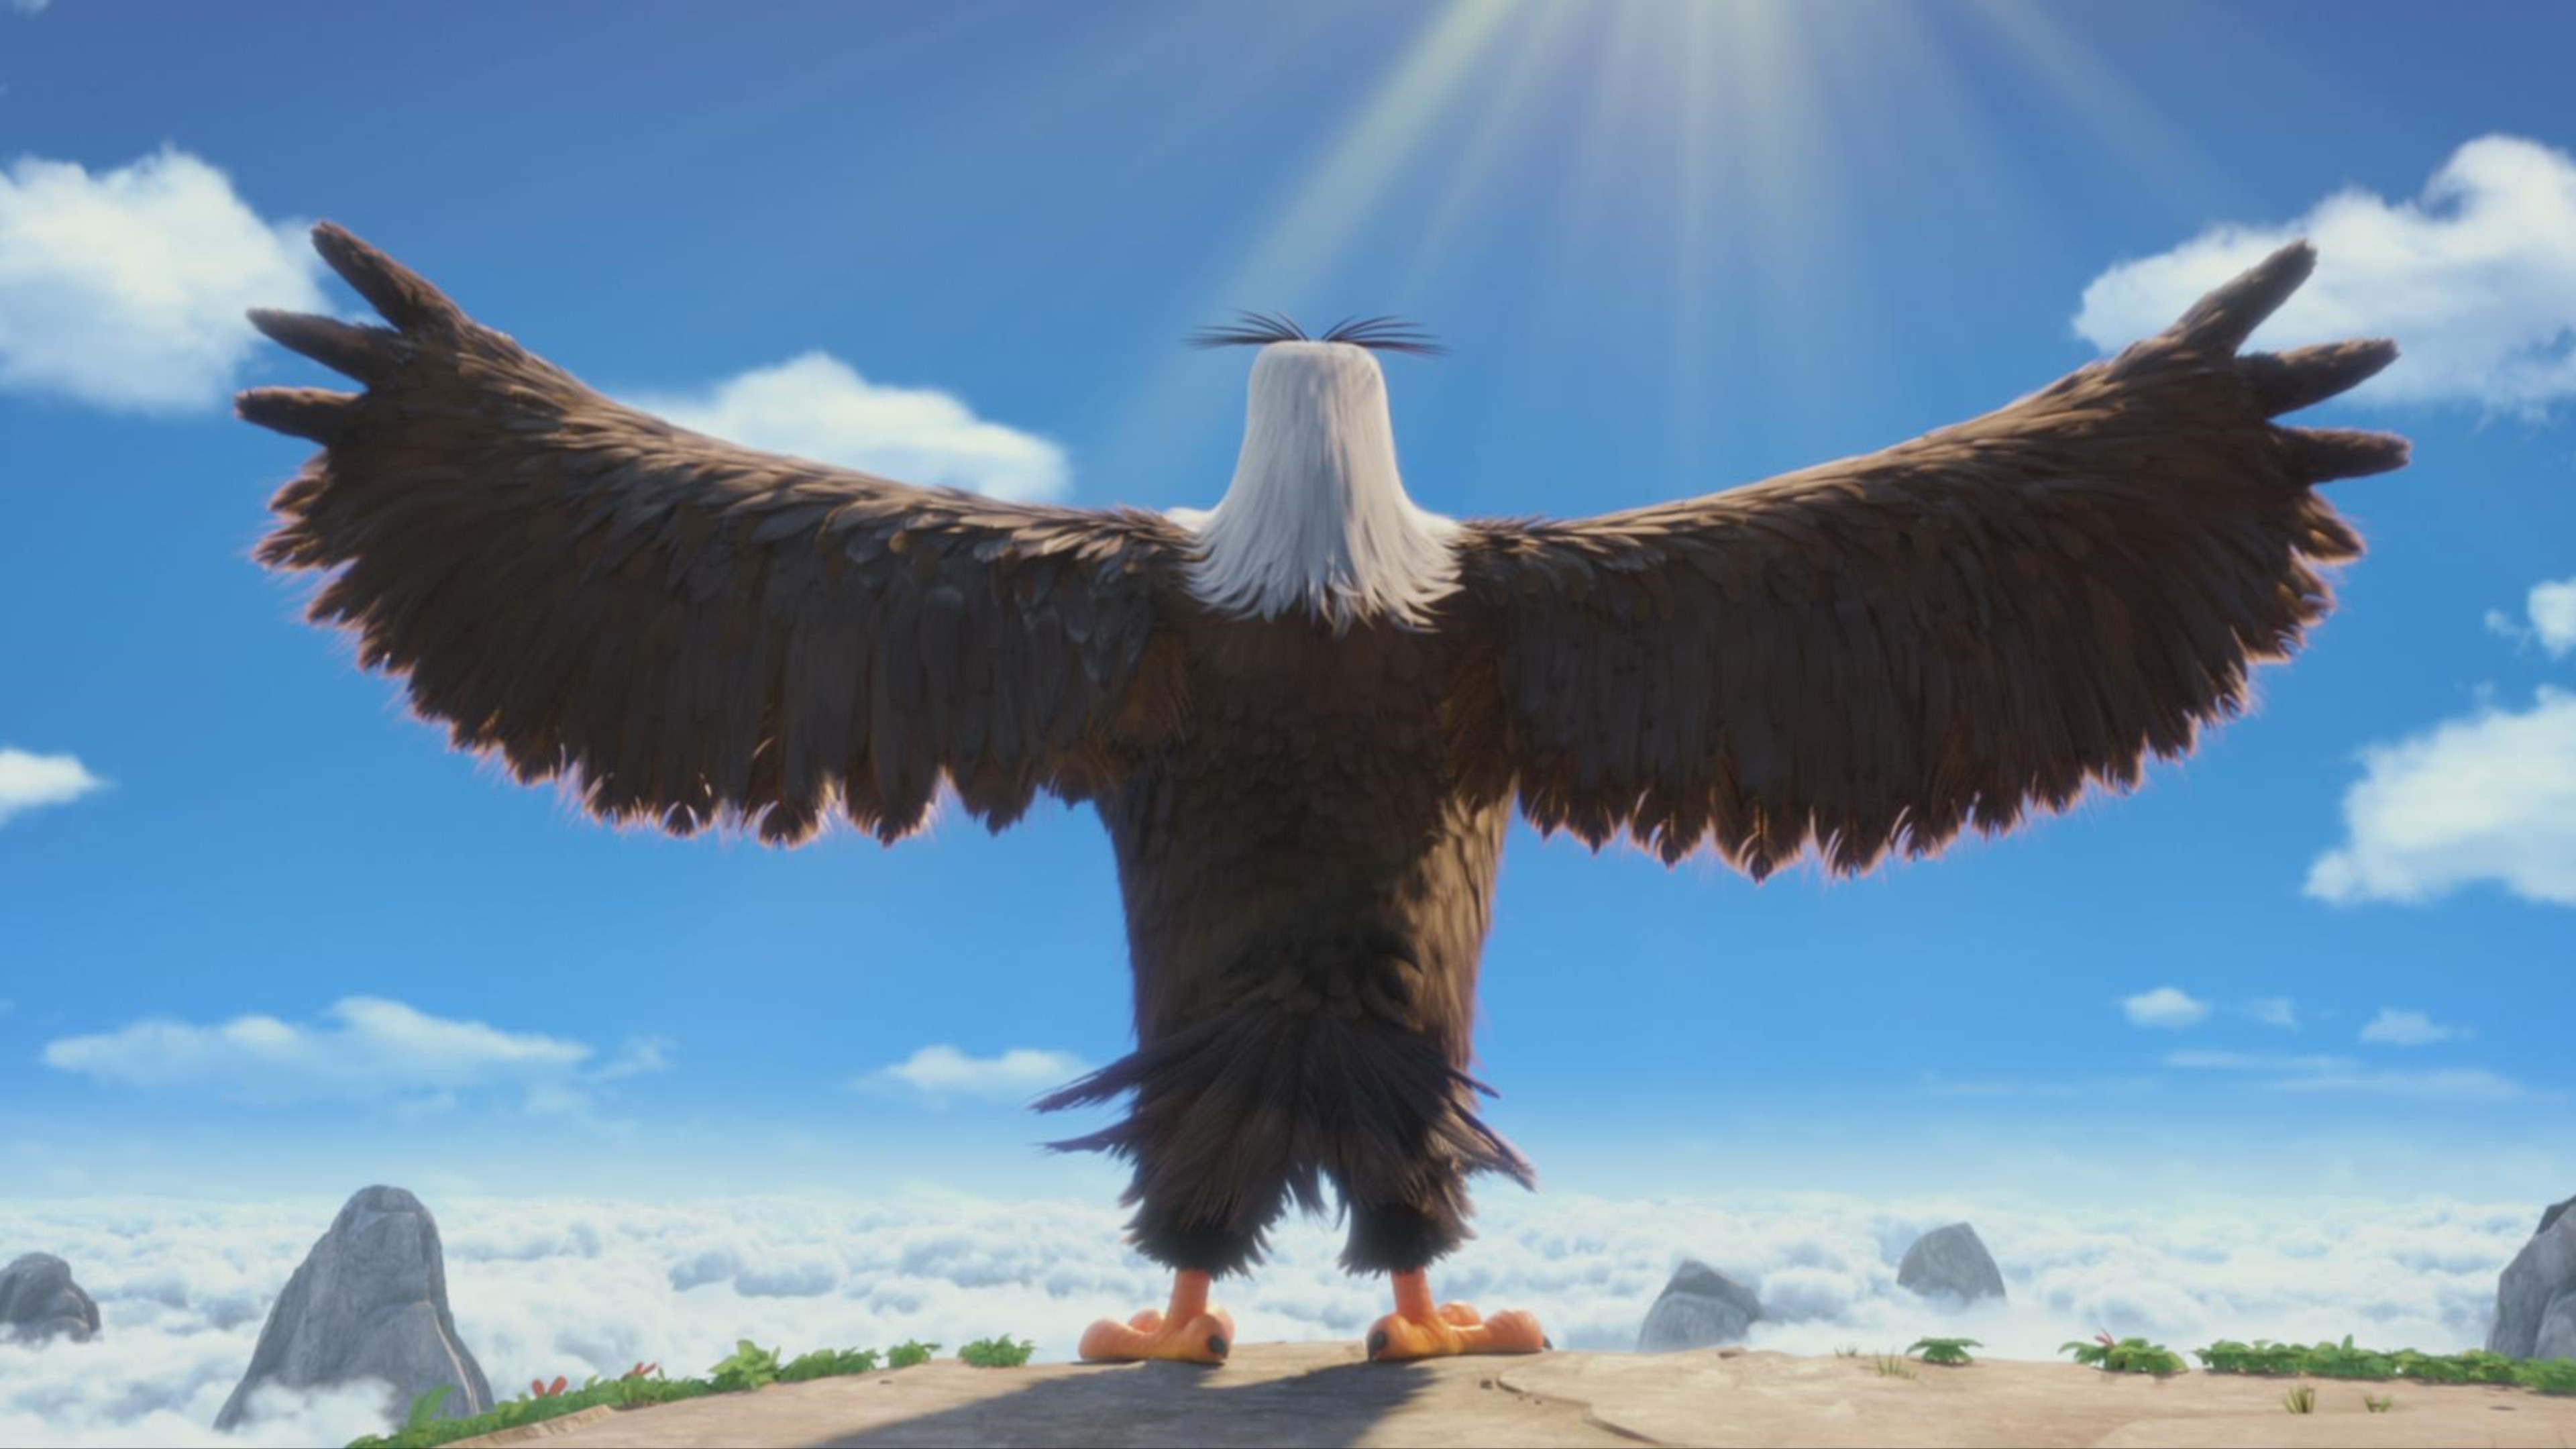 Eagle Angry Birds Movie Wallpaper